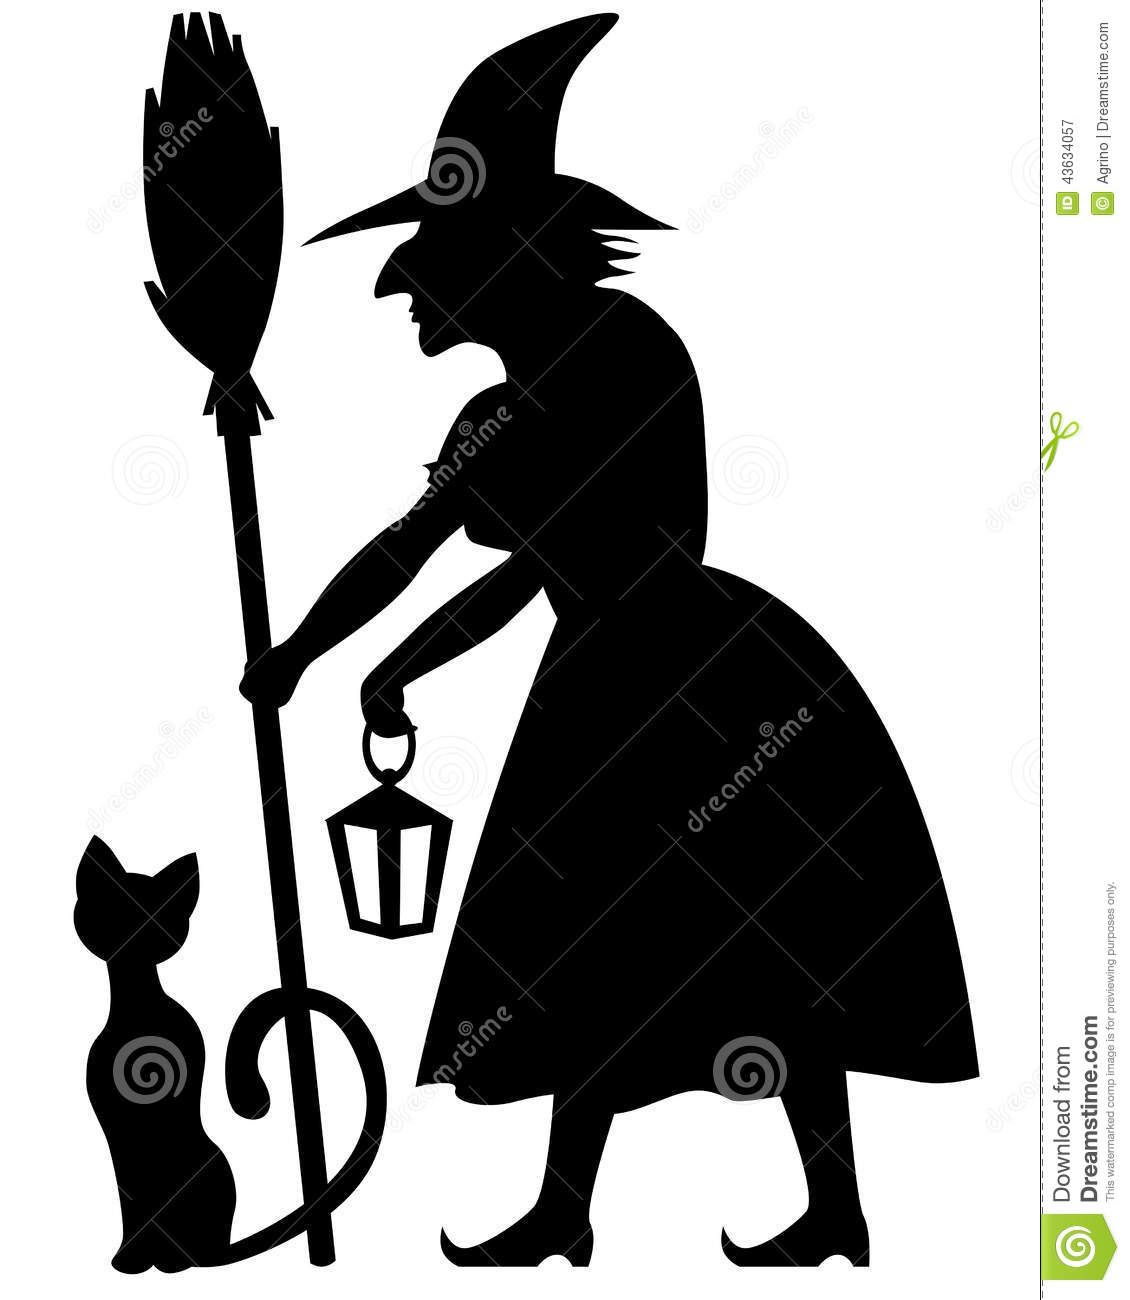 1130x1300 Scary Witches On Broomsticks Black And White Image Of Scary